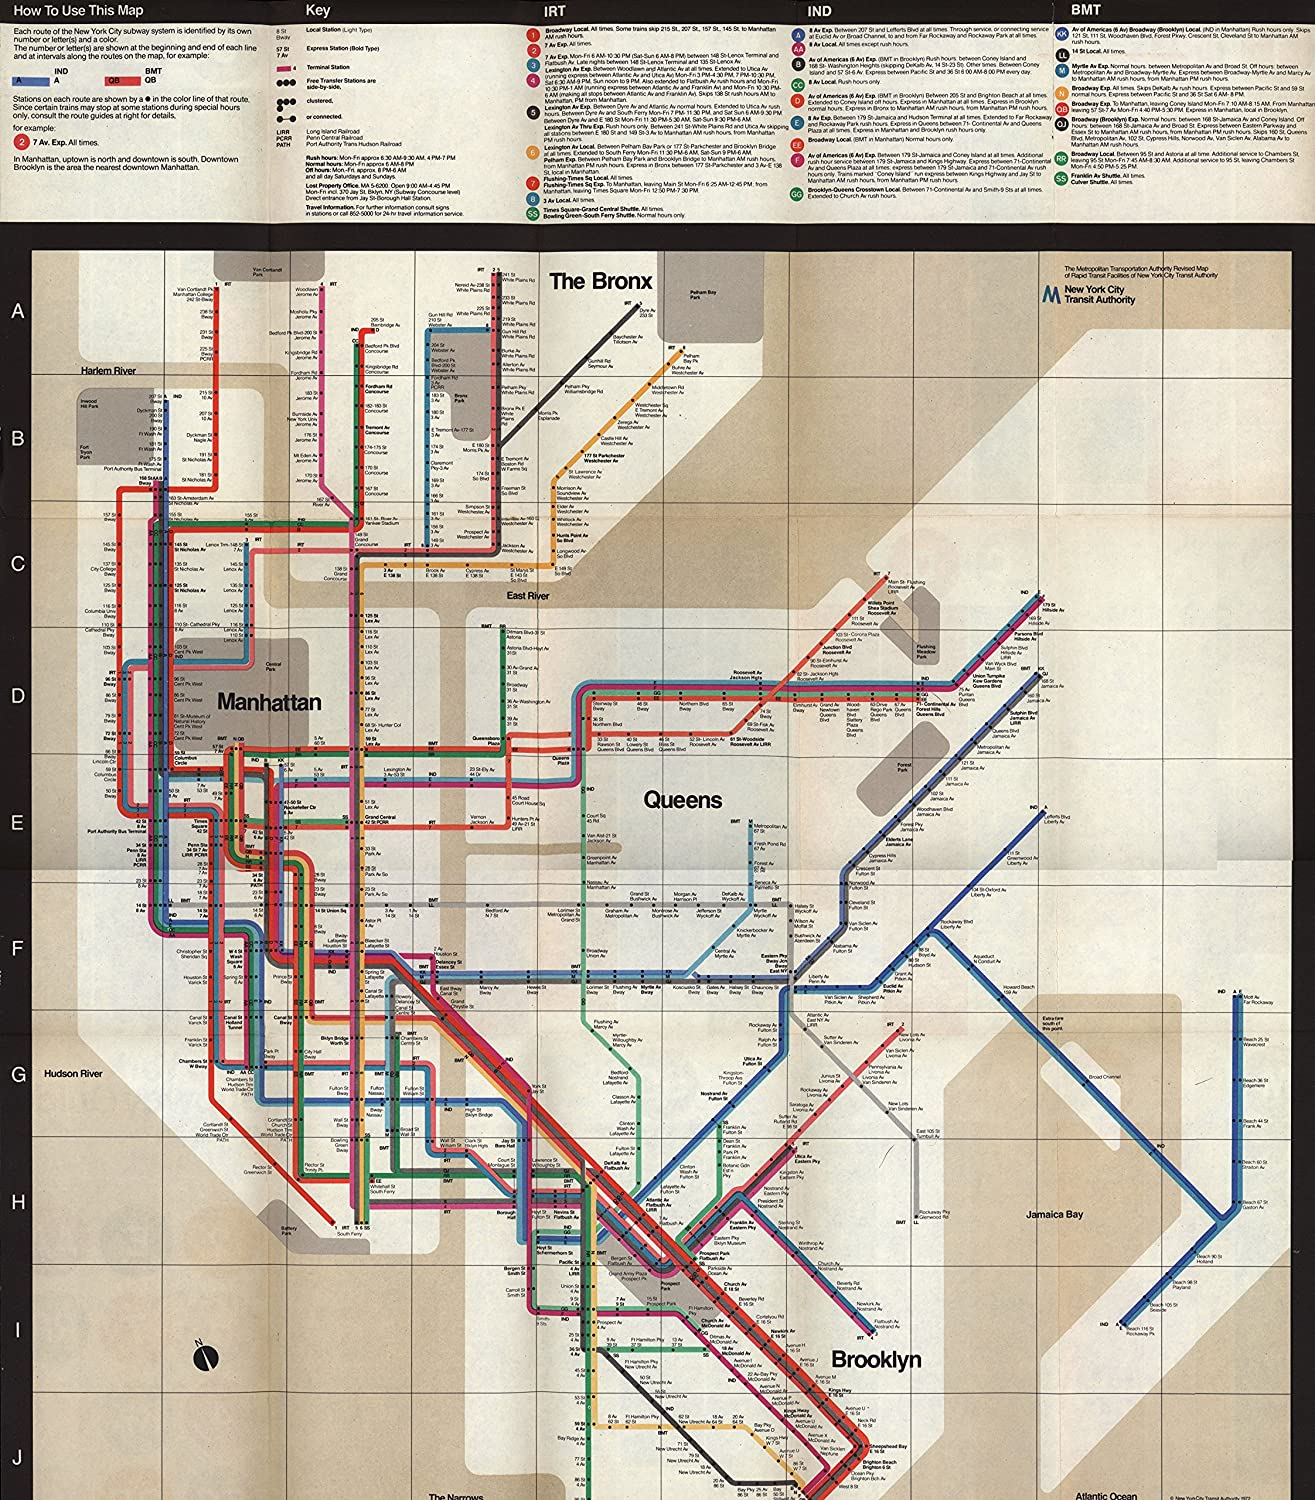 Nyc Subway Map Massimo Vignelli.Amazon Com 1972 Massimo Vignelli New York Subway Map Various